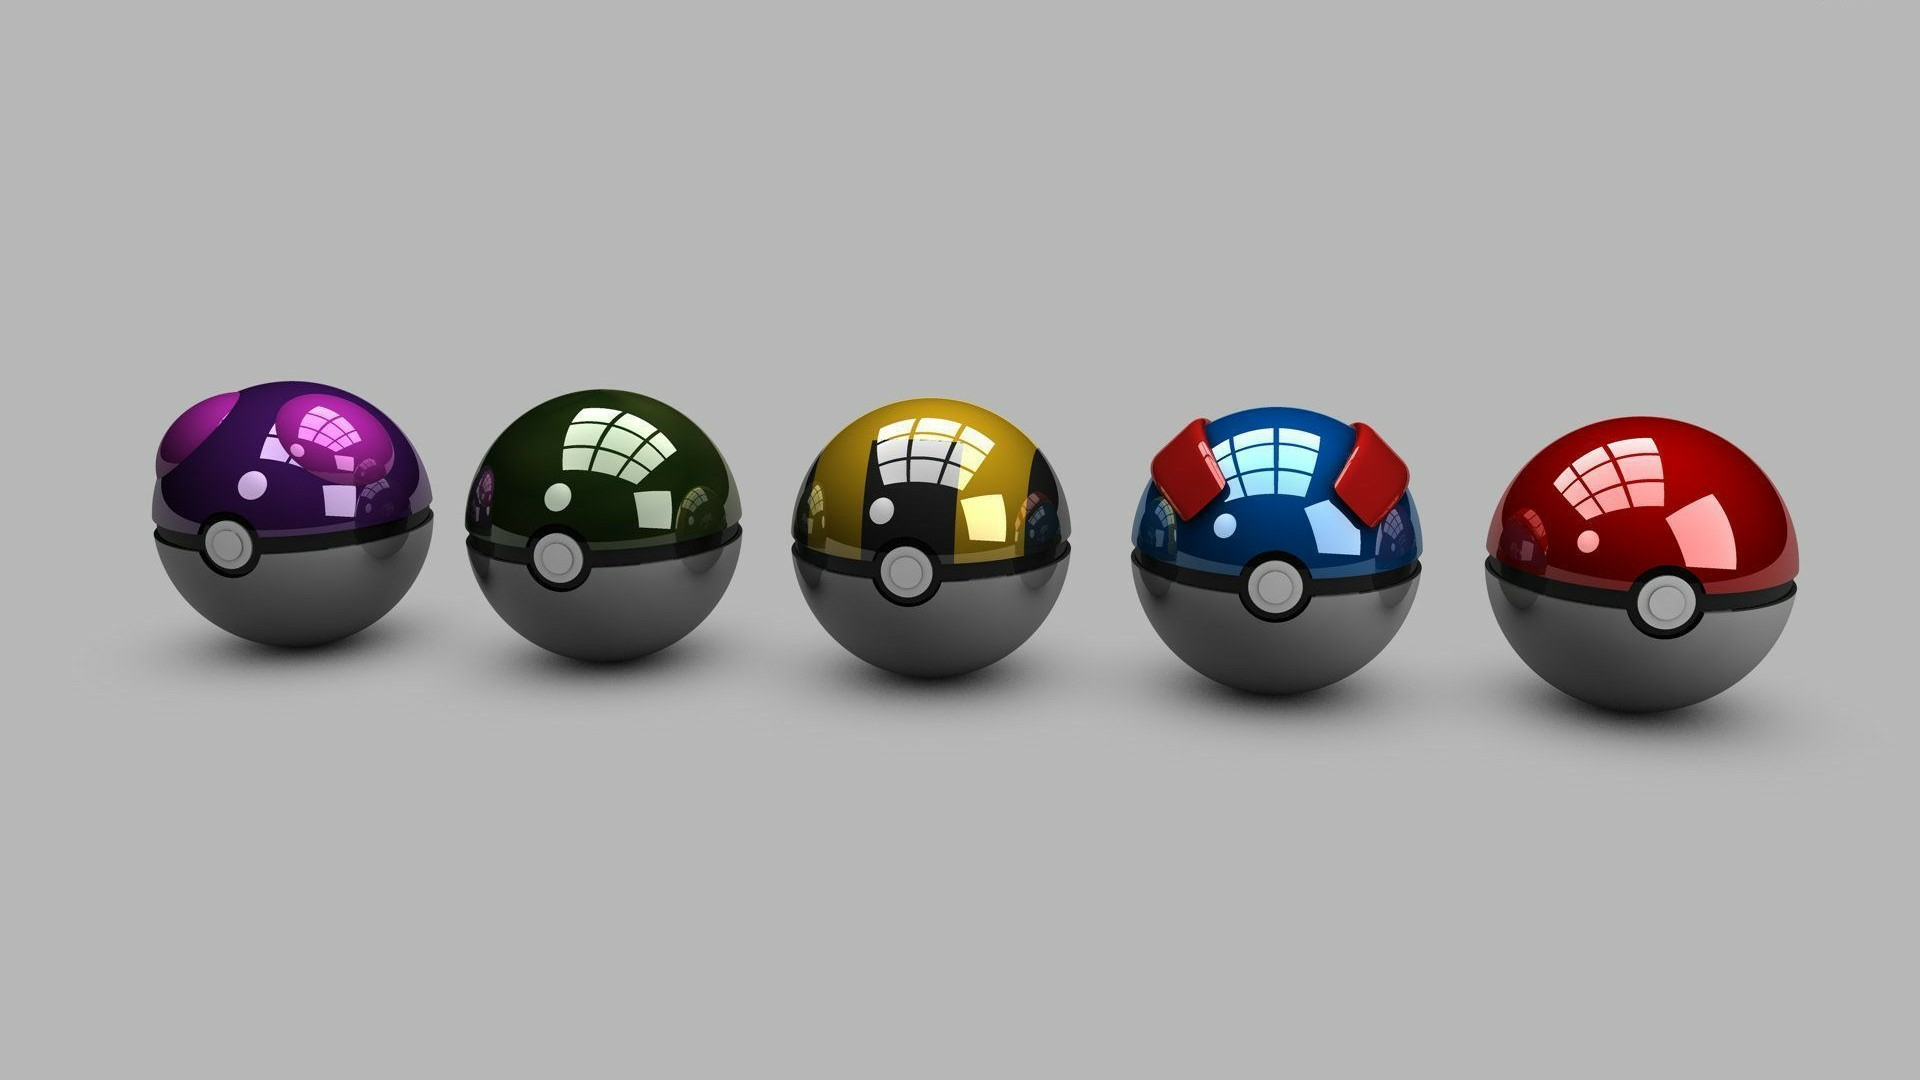 Pictures of a pokeball Pokeball, pokemon ball PNG images free download